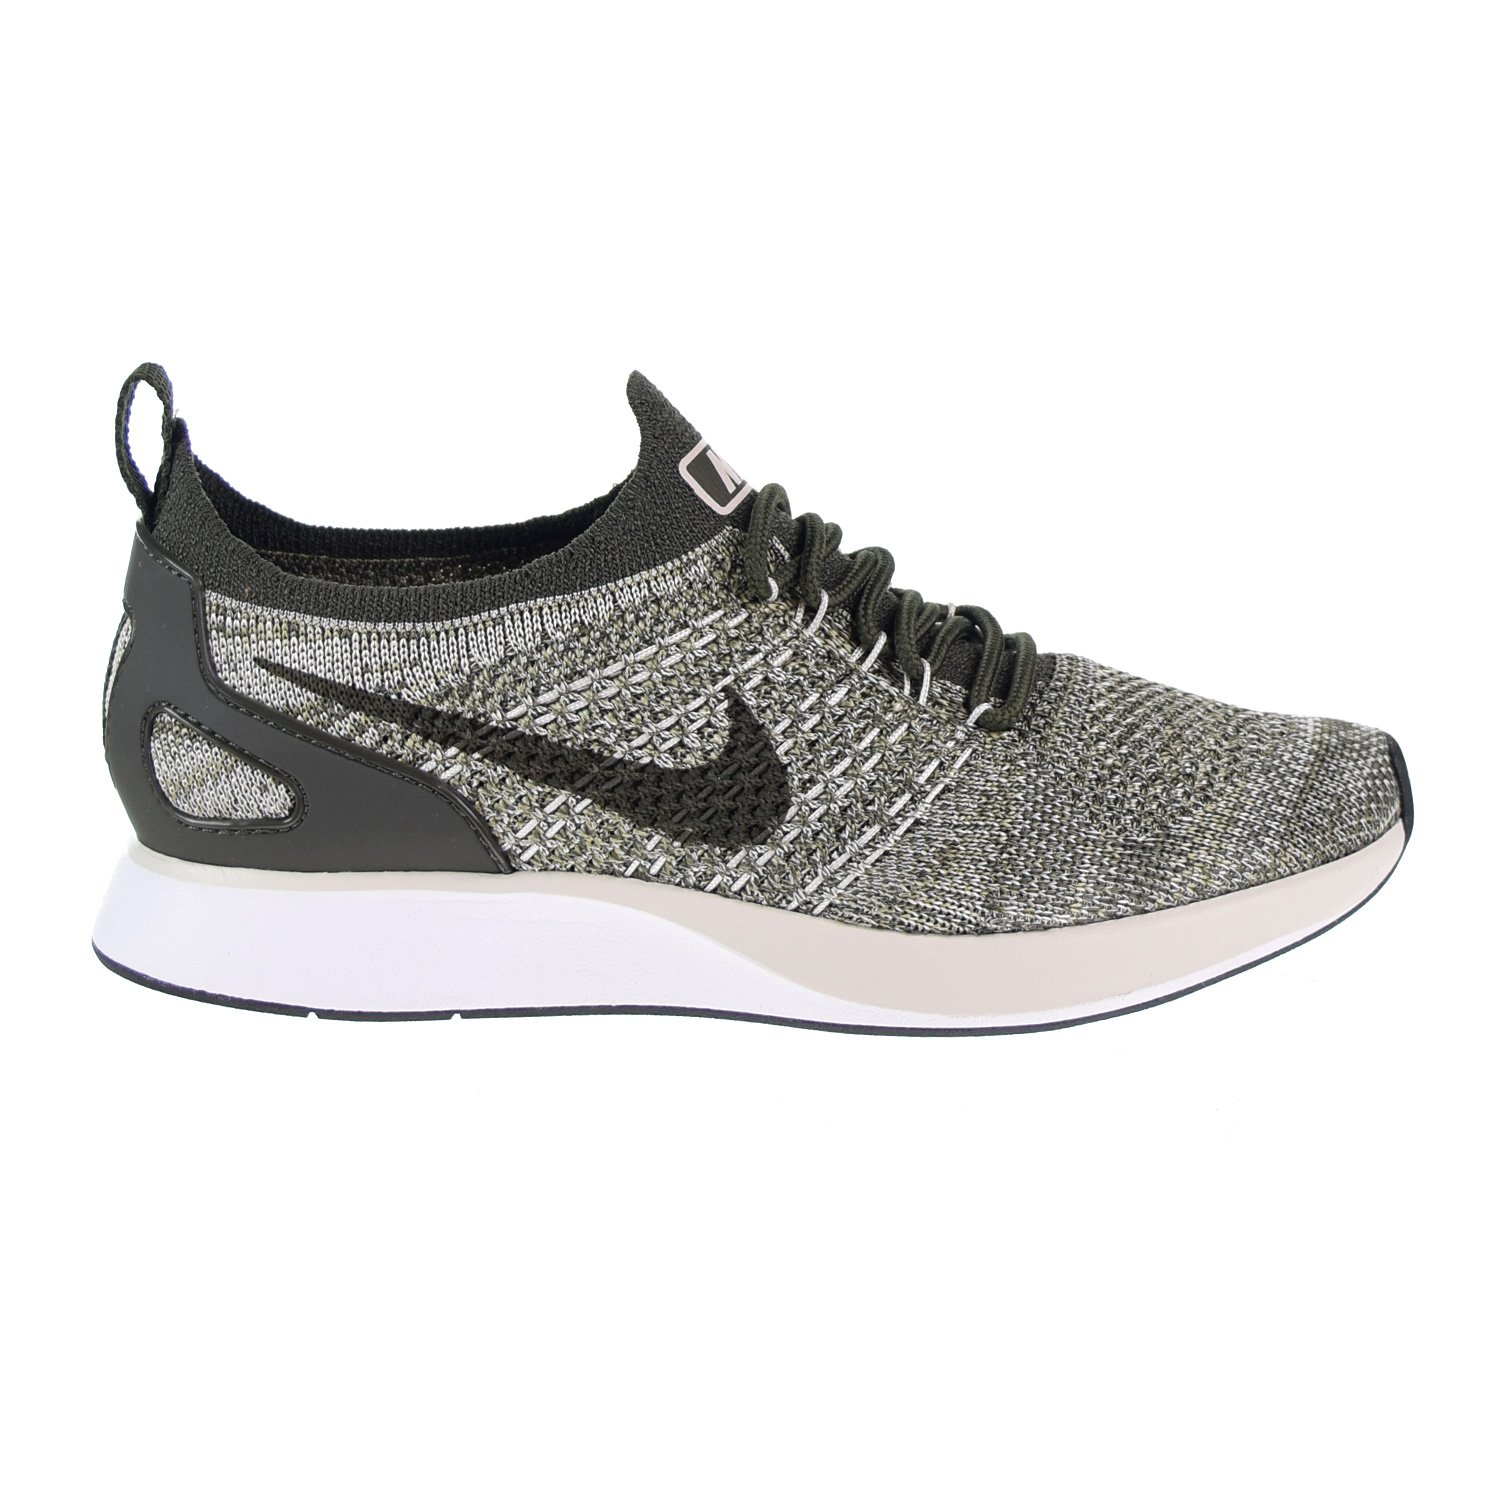 2f5e9783db60 Nike Women  s Air Zoom Mariah Flyknit Racer Trainers